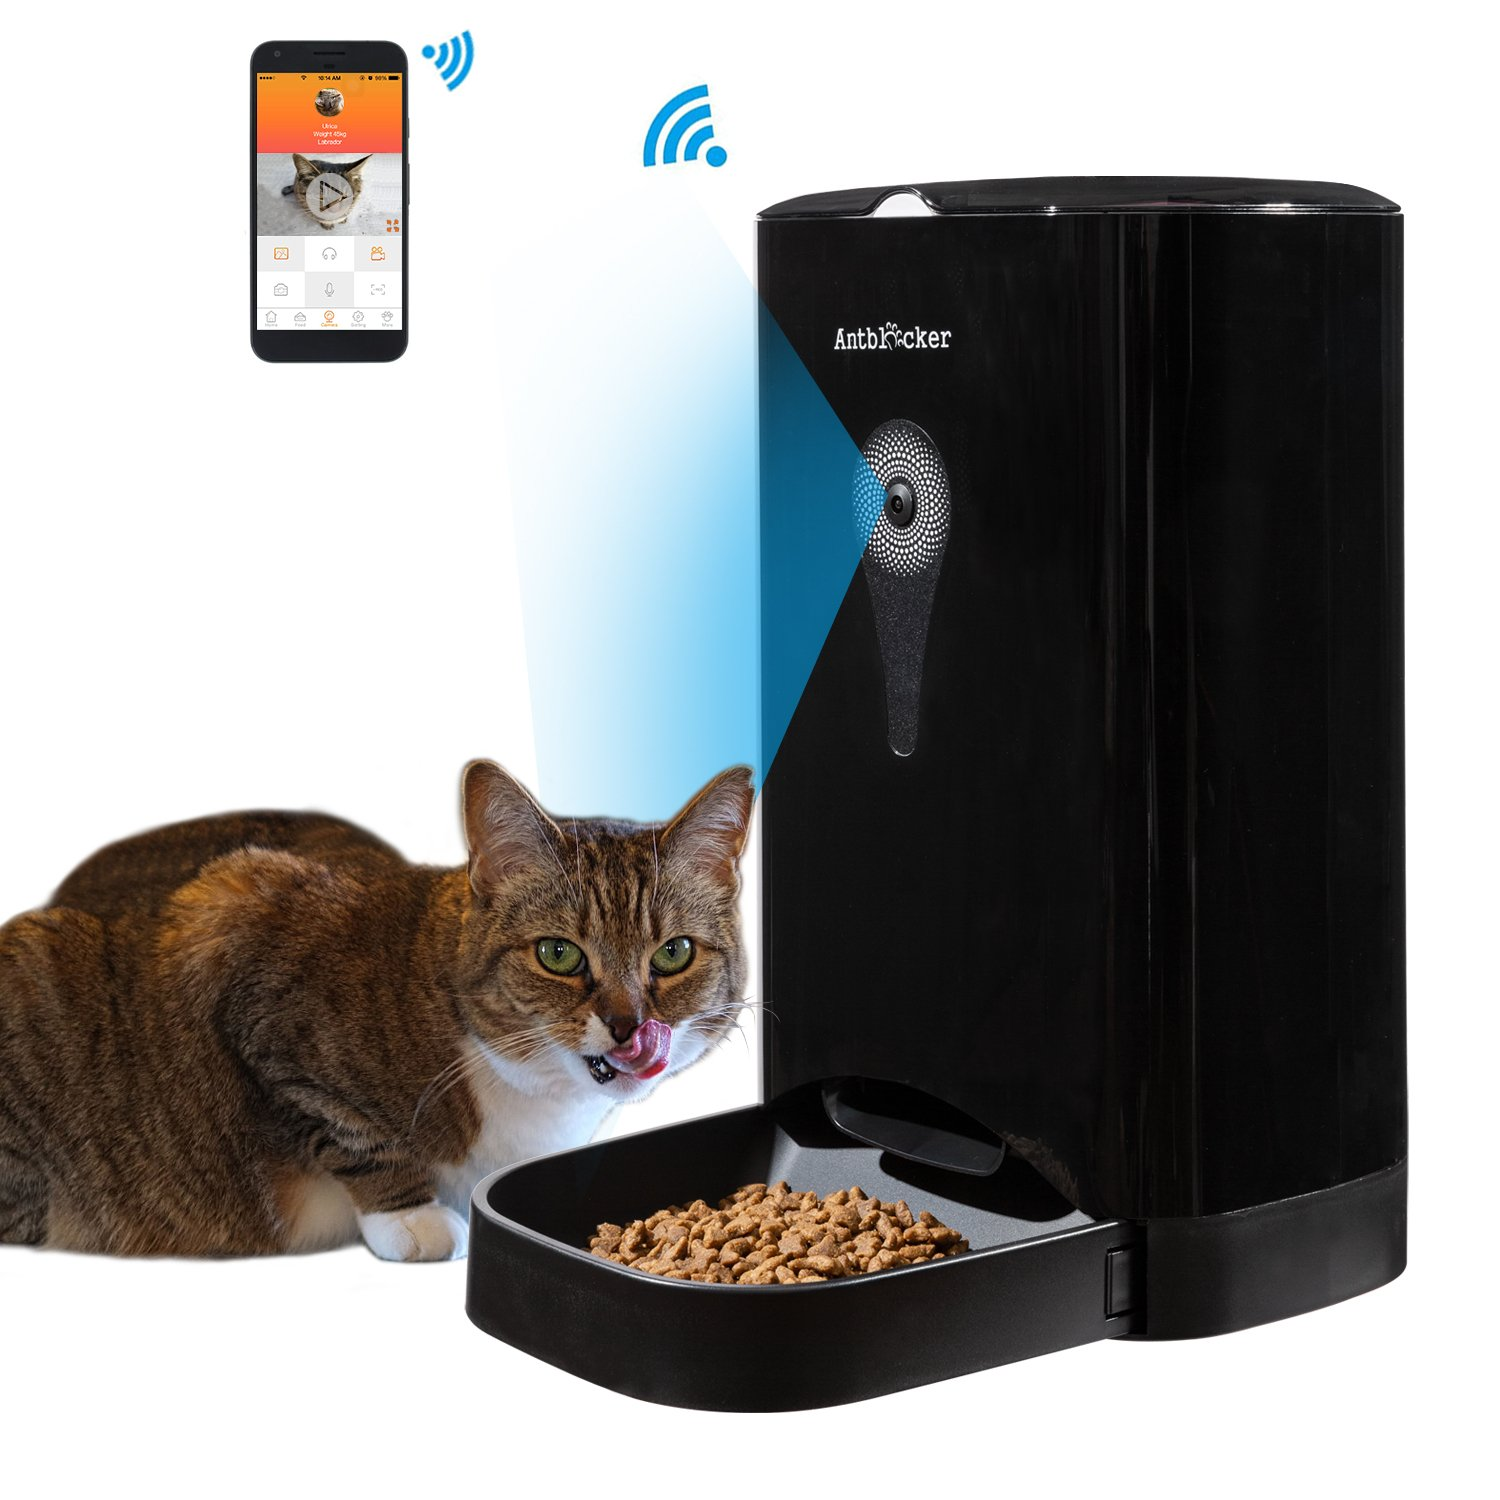 4.5L Automatic Cat Feeder Buildin HD Camera and Audio Communication, Smart Dog Food Dispenser with Remote Control APP, Black